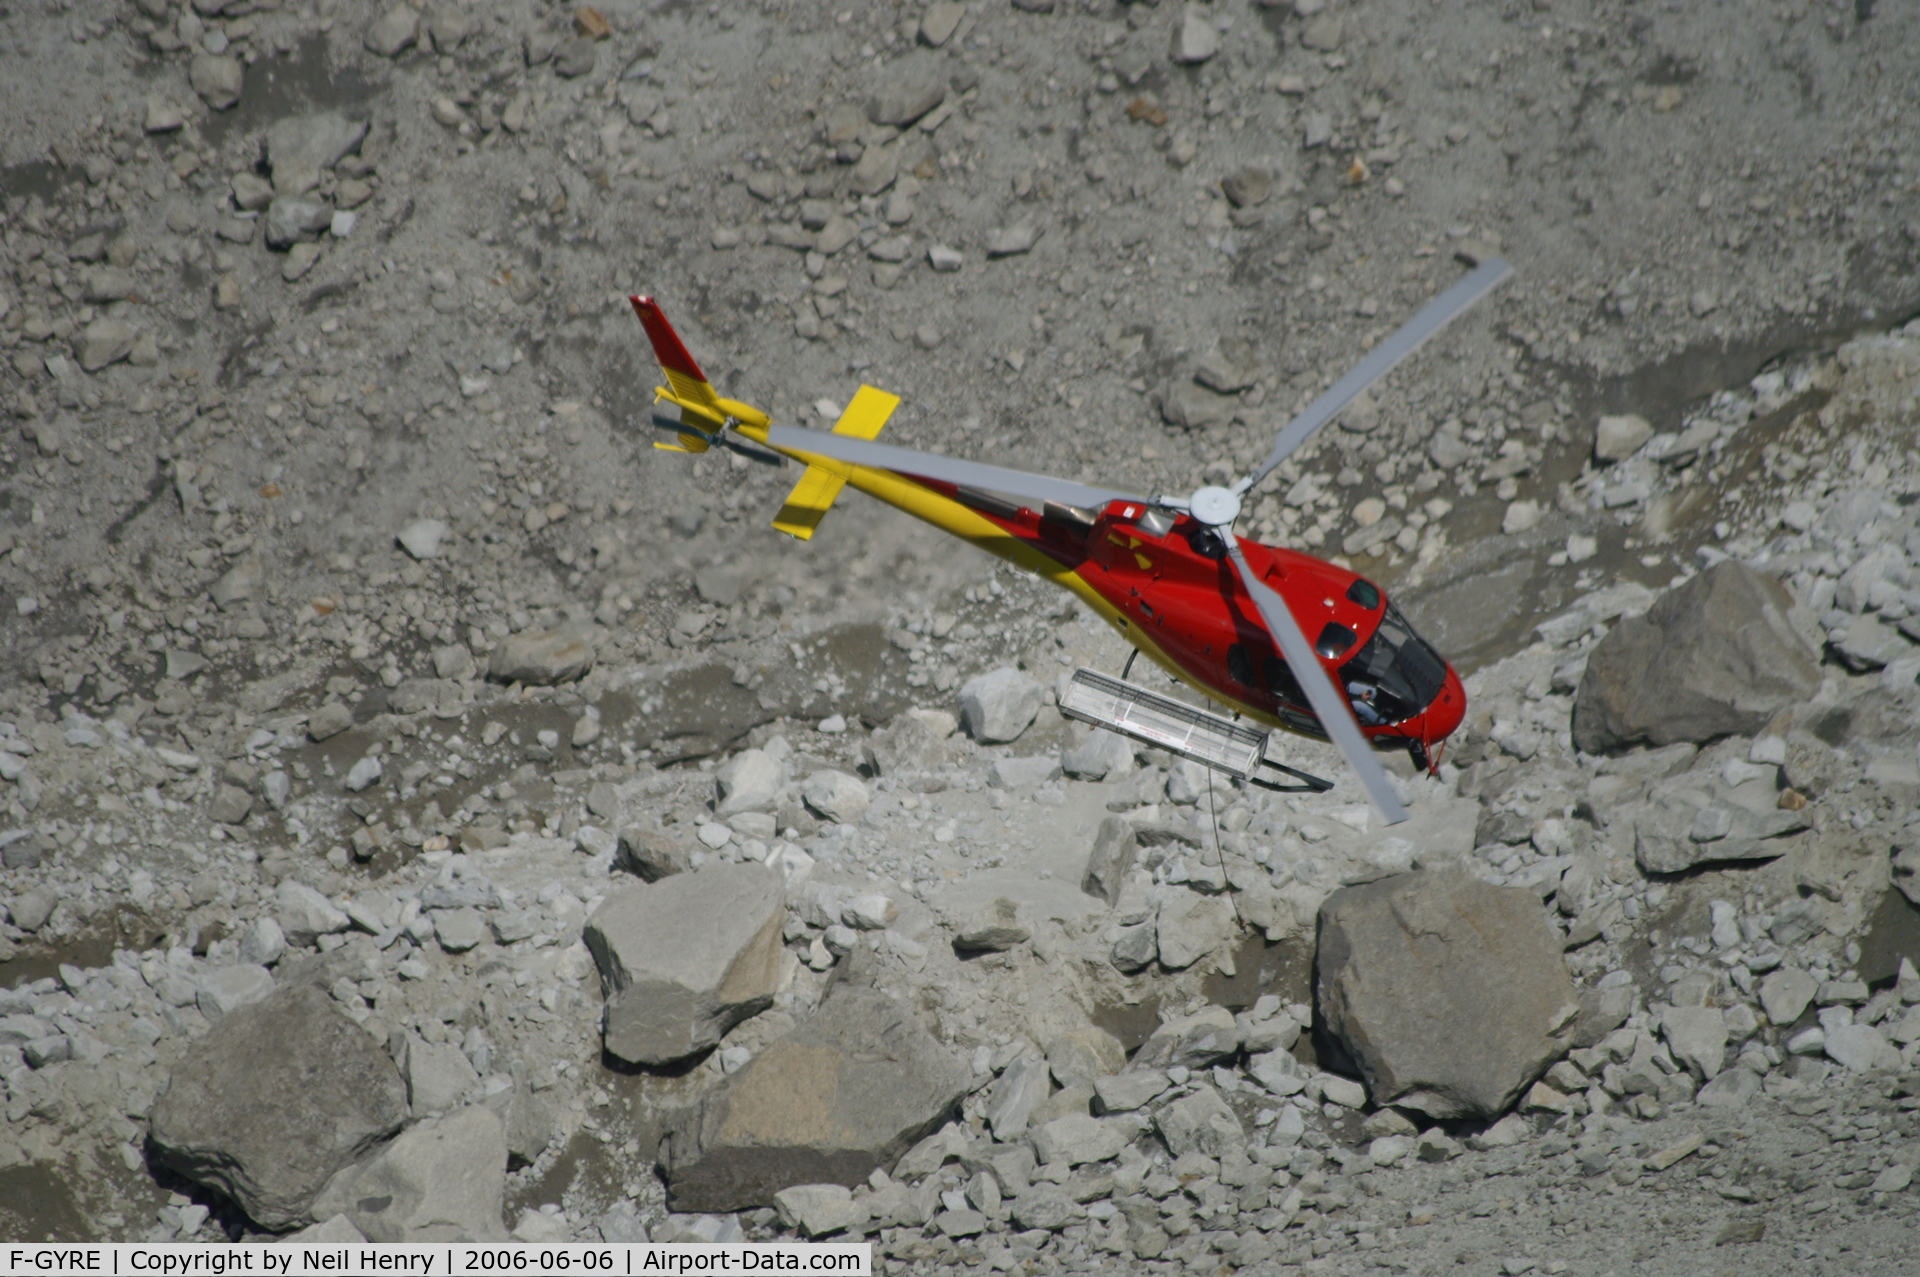 F-GYRE, Eurocopter AS-350B-3 Ecureuil C/N 3818, Rescue helicopter on training exercise over Mer de Glace (glacier) near Chamonix, France